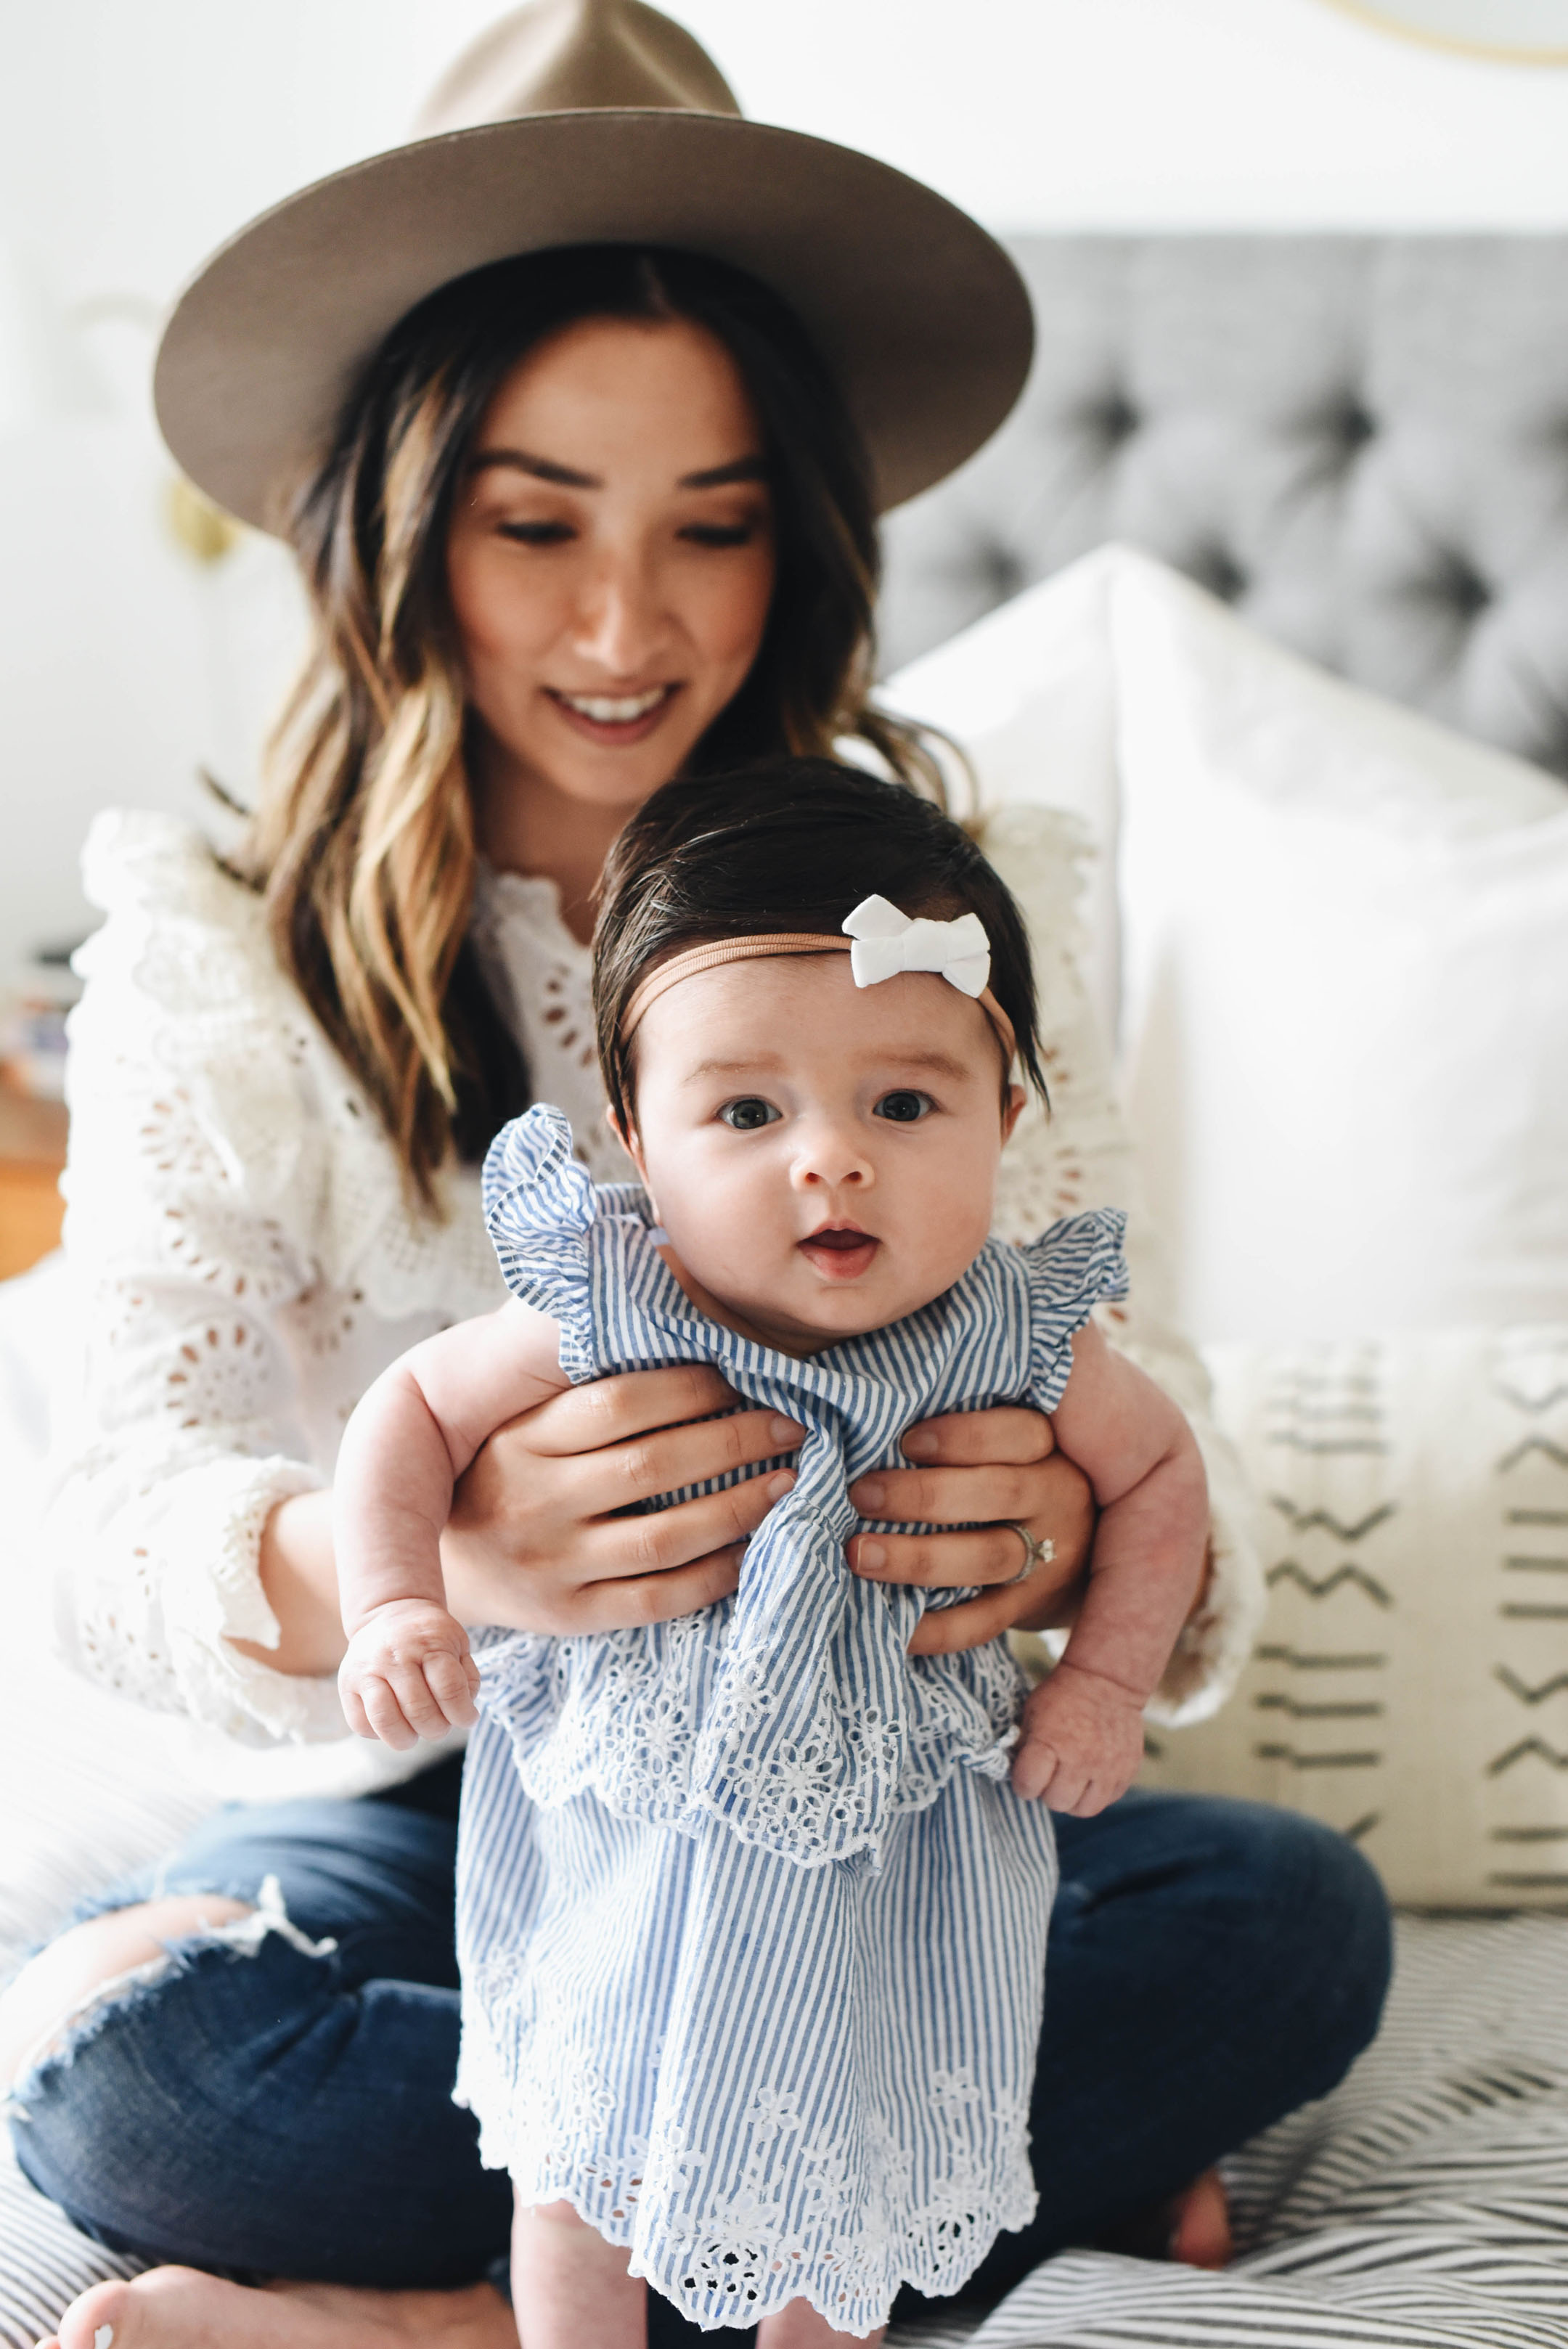 Harper s 3 Month Update and Schedule Crystalin Marie